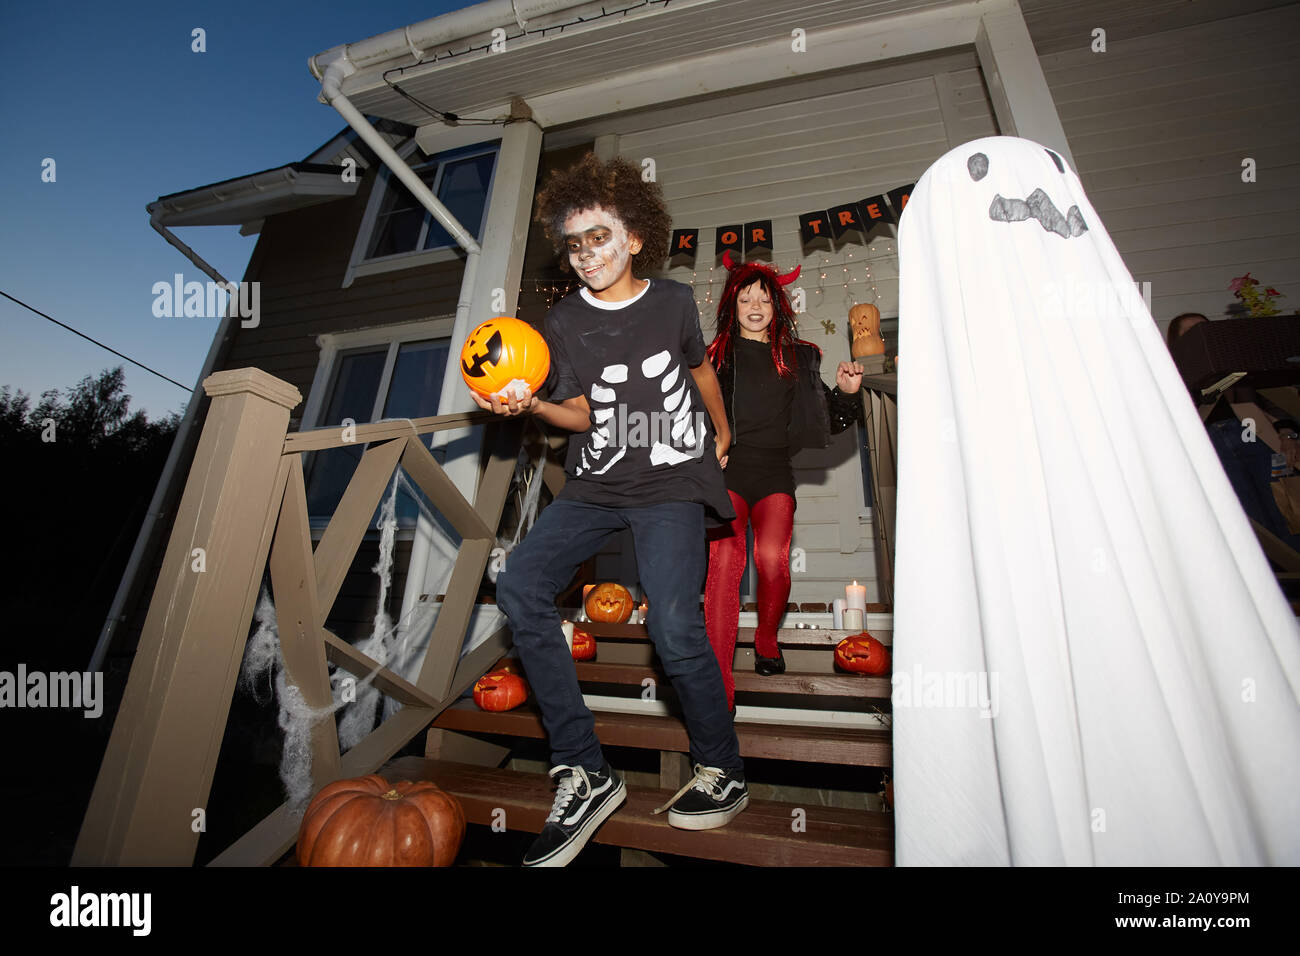 Low angle portrait of happy children leaving house trick or treating on Halloween, focus on smiling African-American boy in foreground, shot with flash Stock Photo